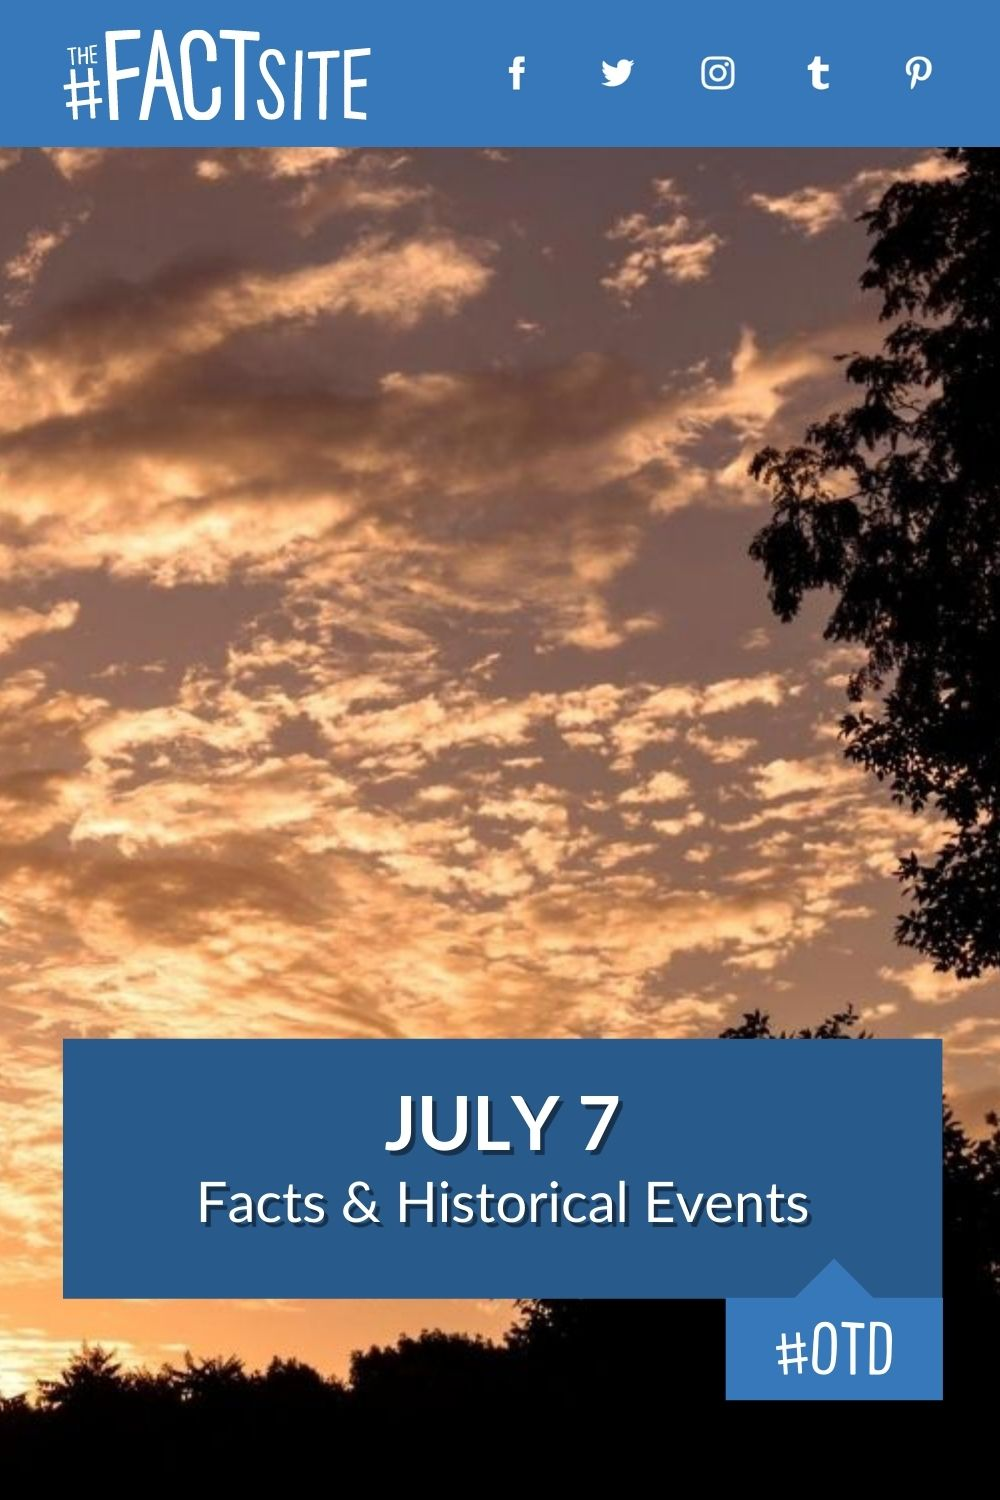 Facts & Historic Events That Happened on July 7